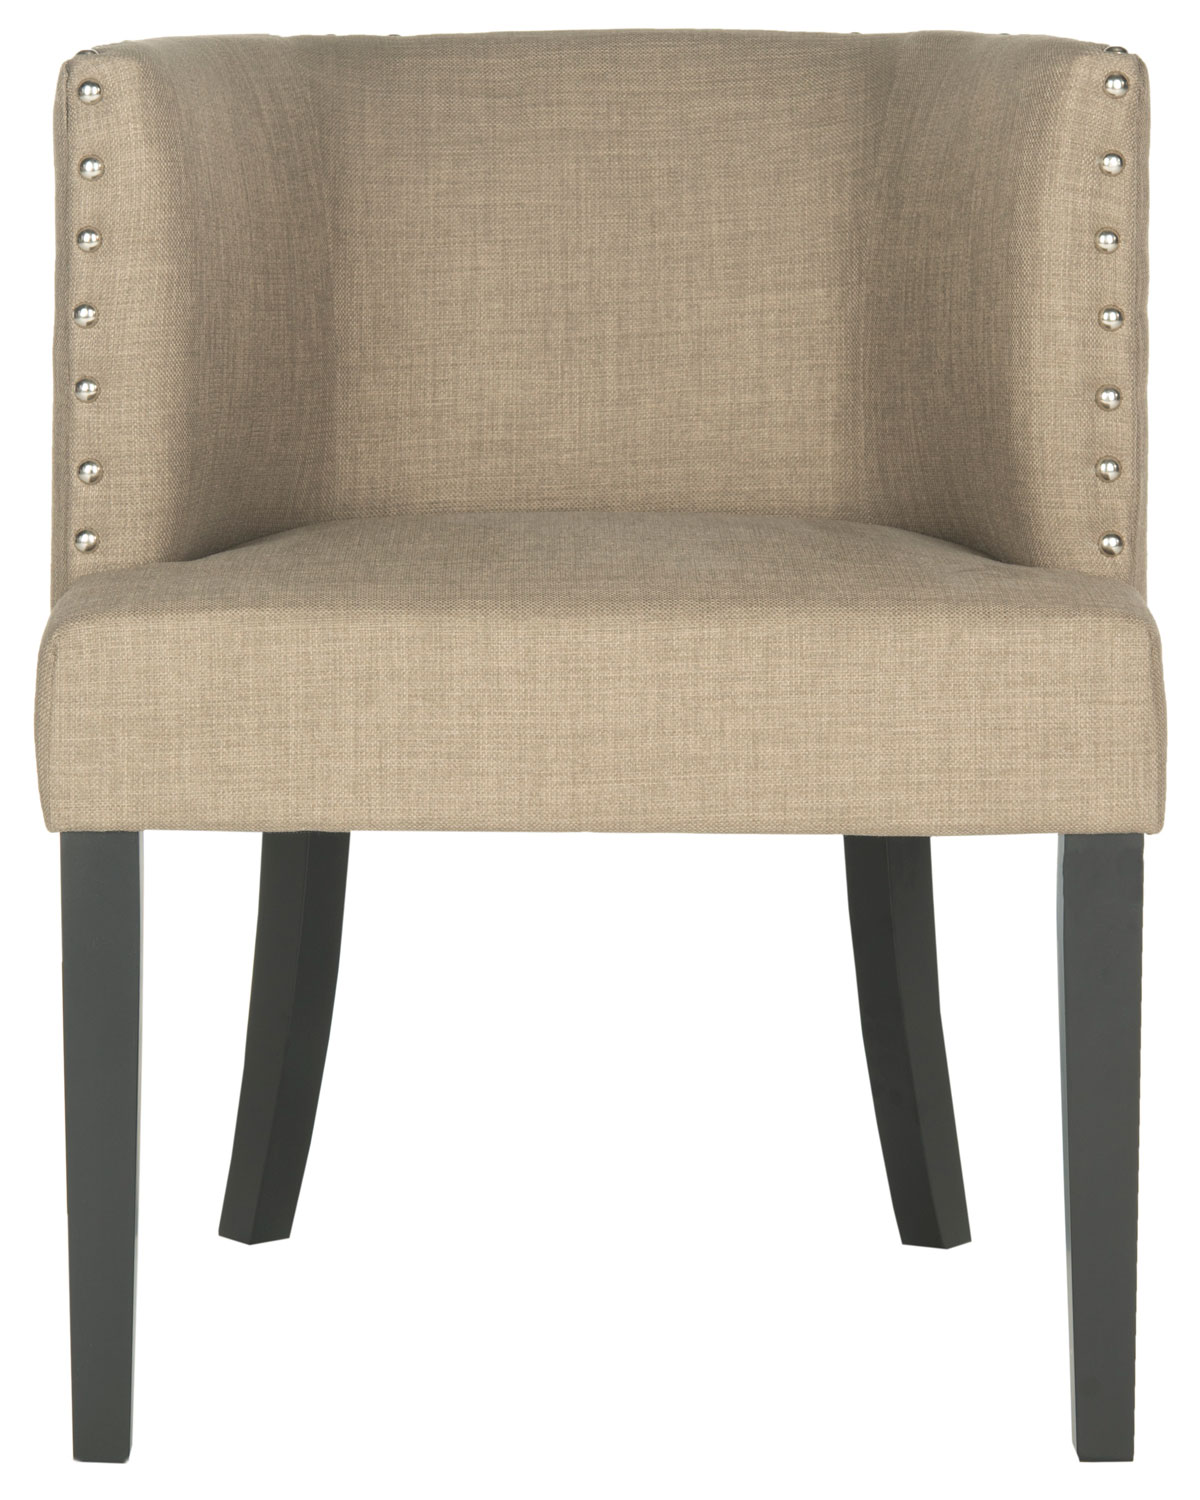 MCR4811A-SET2 Dining Chairs - Furniture by Safavieh